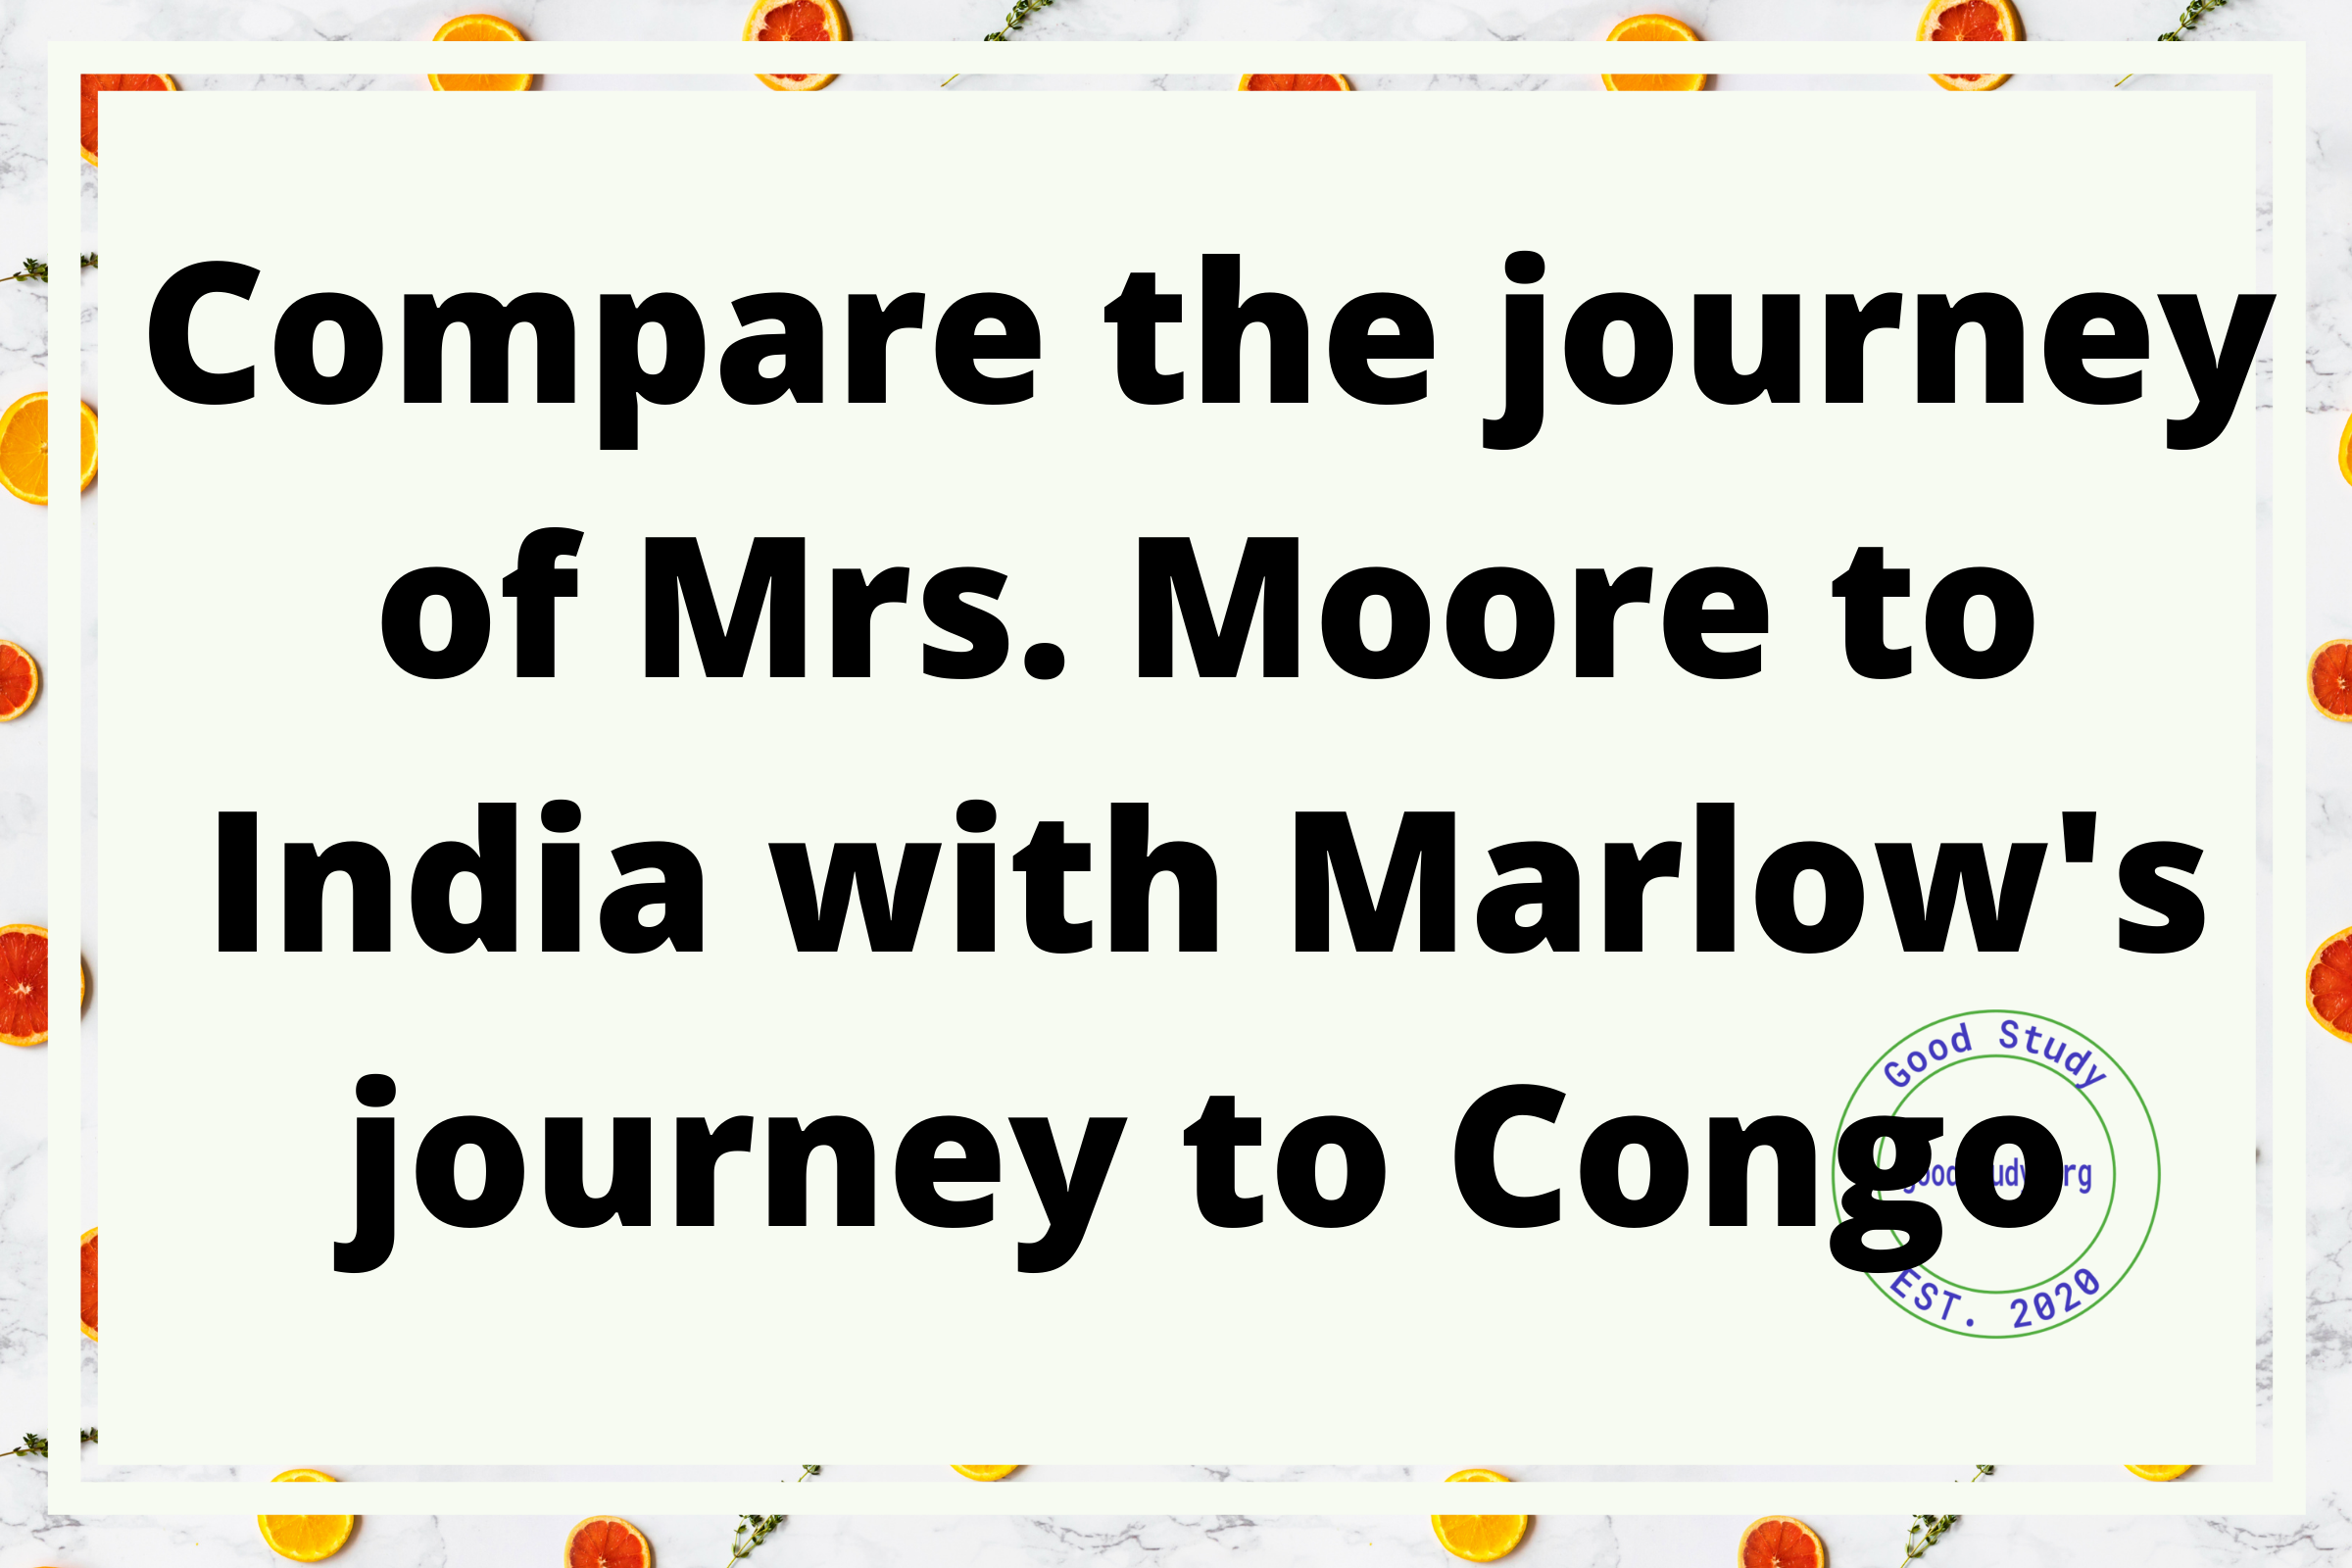 Compare the journey of Mrs. Moore to India with Marlow's journey to Congo